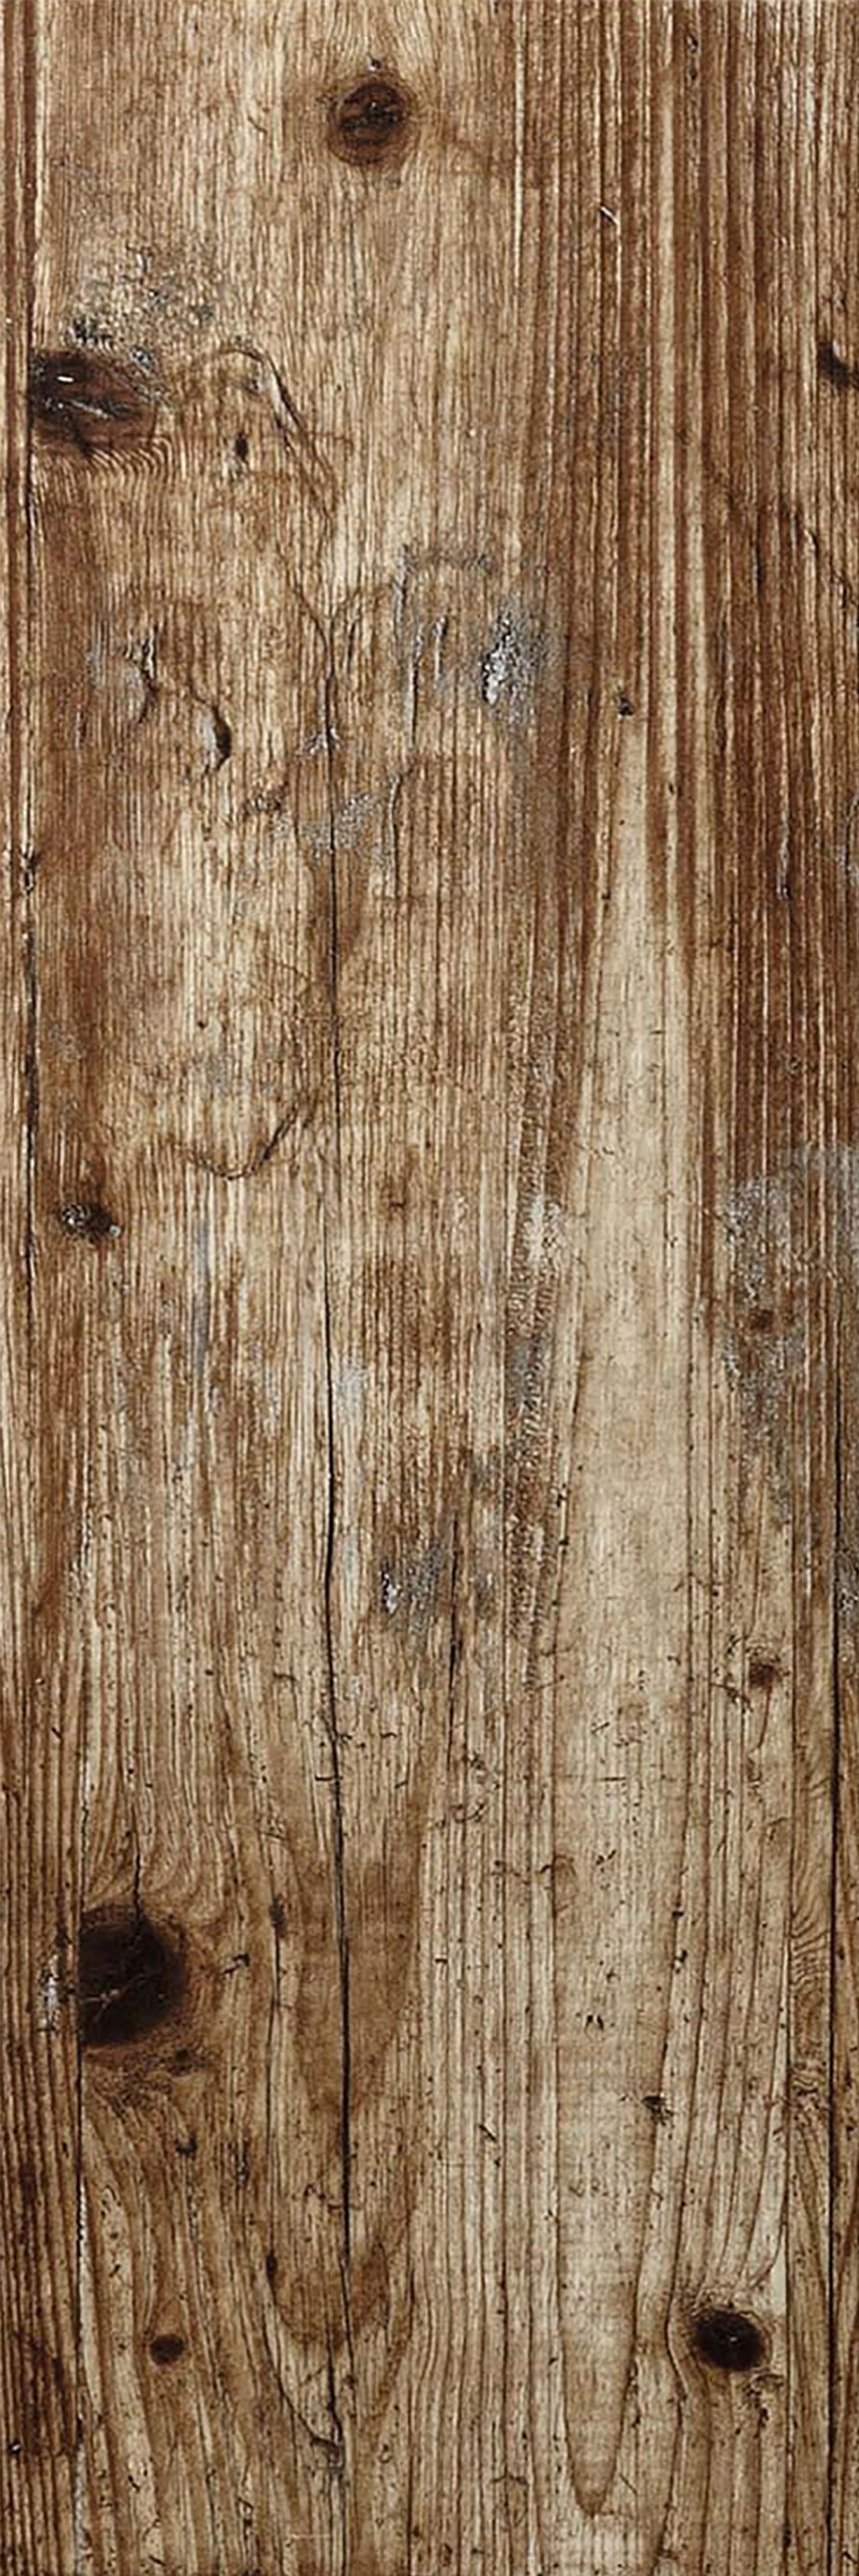 Rustic Barn Tiles look completely realistic and only £19